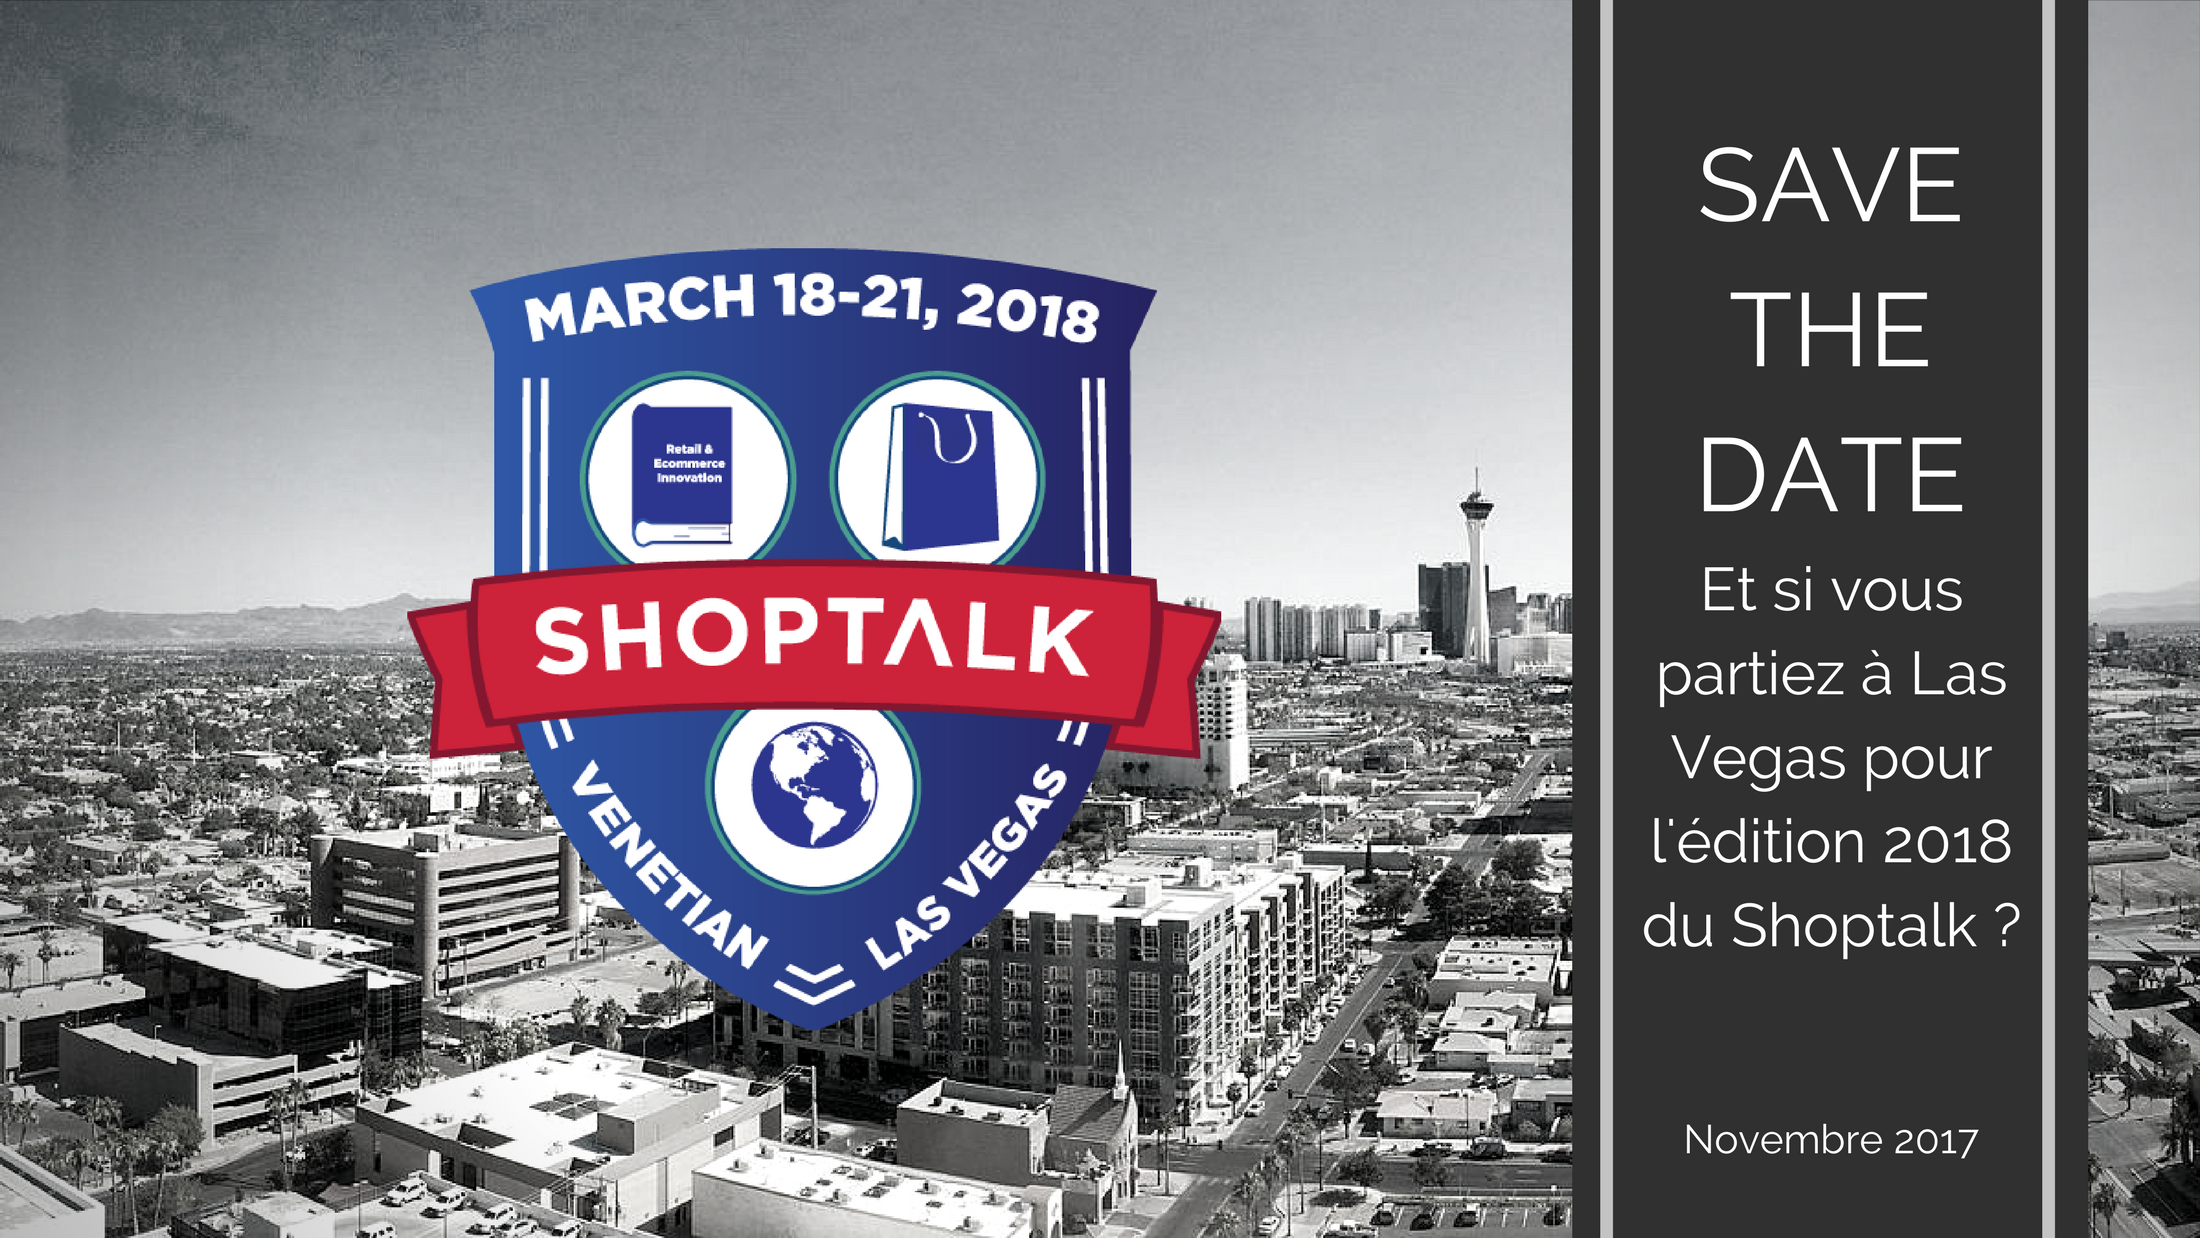 learning expedition shoptalk 2018 las vegas